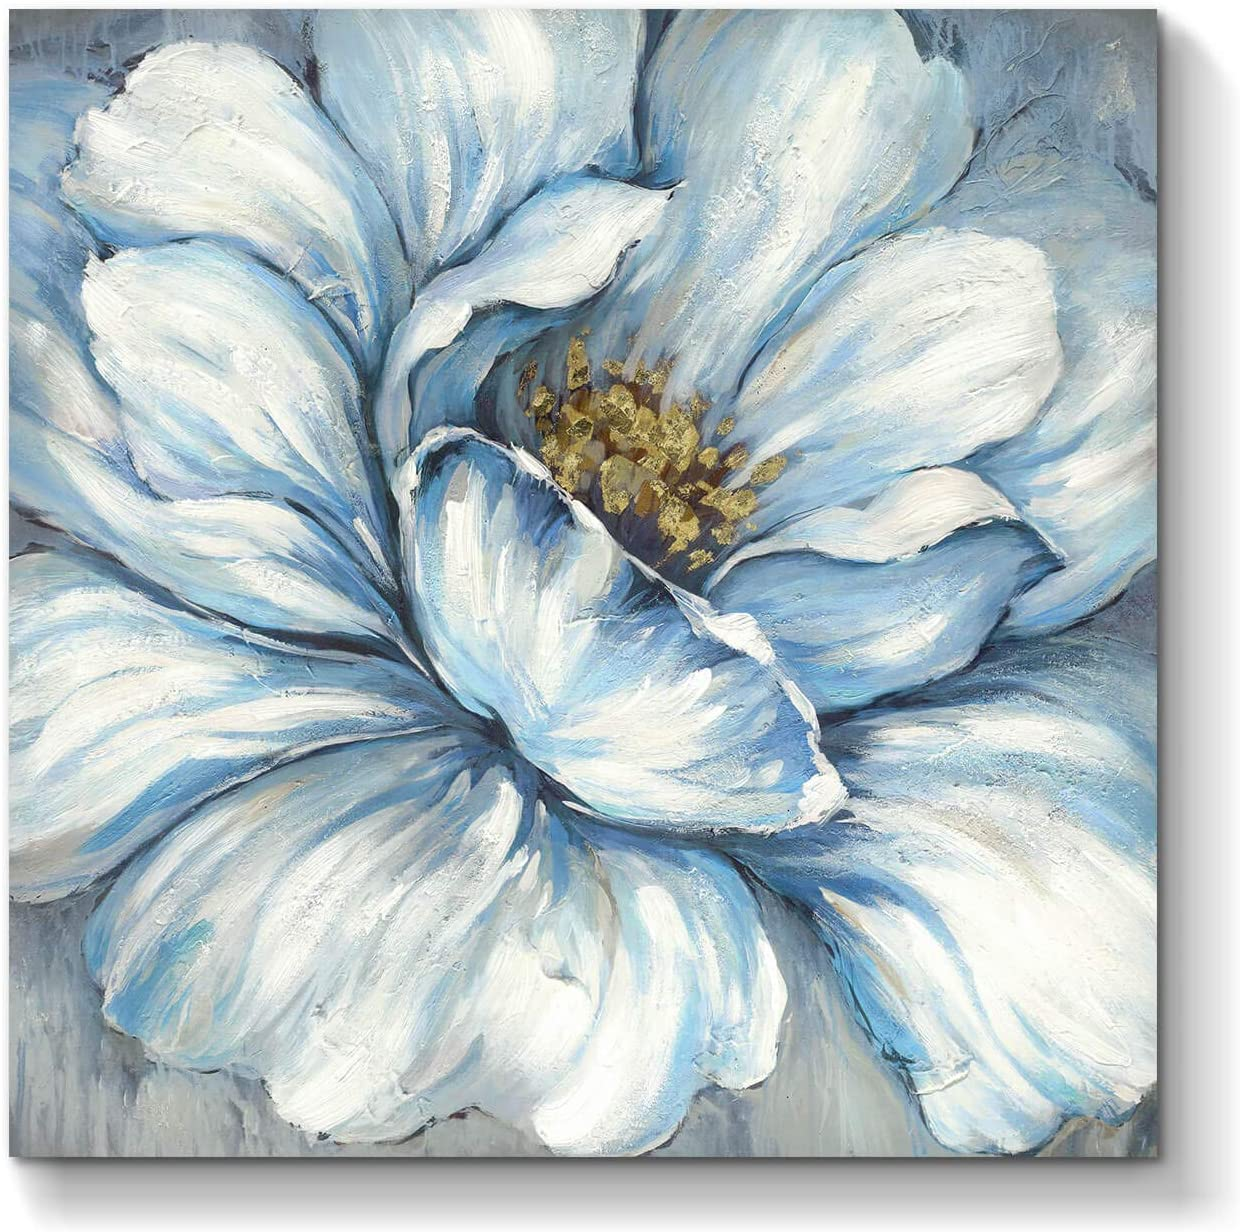 Floral Abstract Wall Art Picture: Hand Blooms Pai Artwork Popular brand in Large special price !! the world Flower